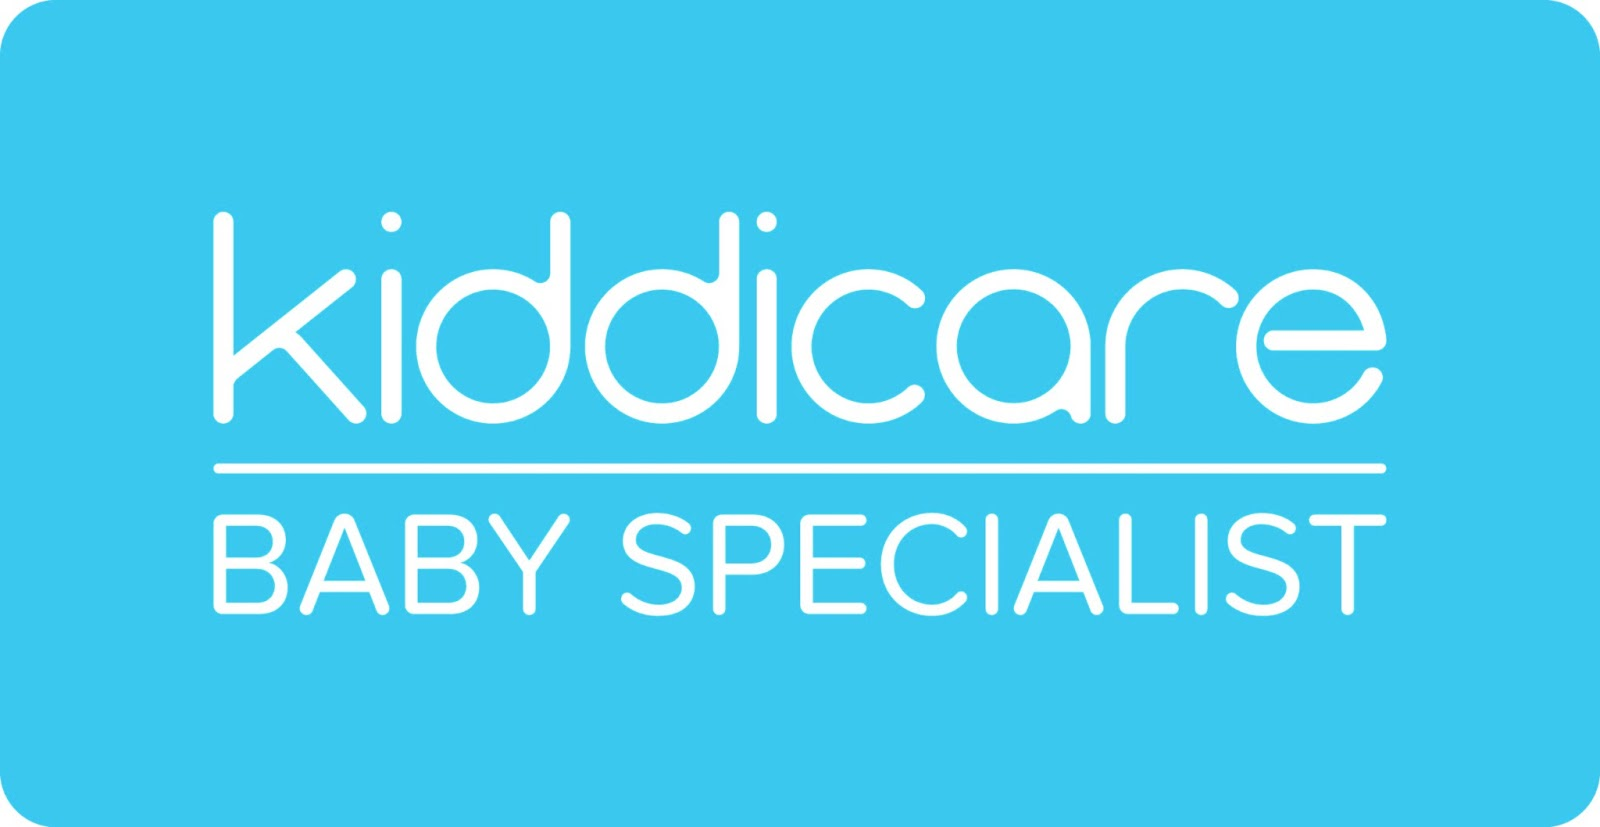 Kiddicare advertising